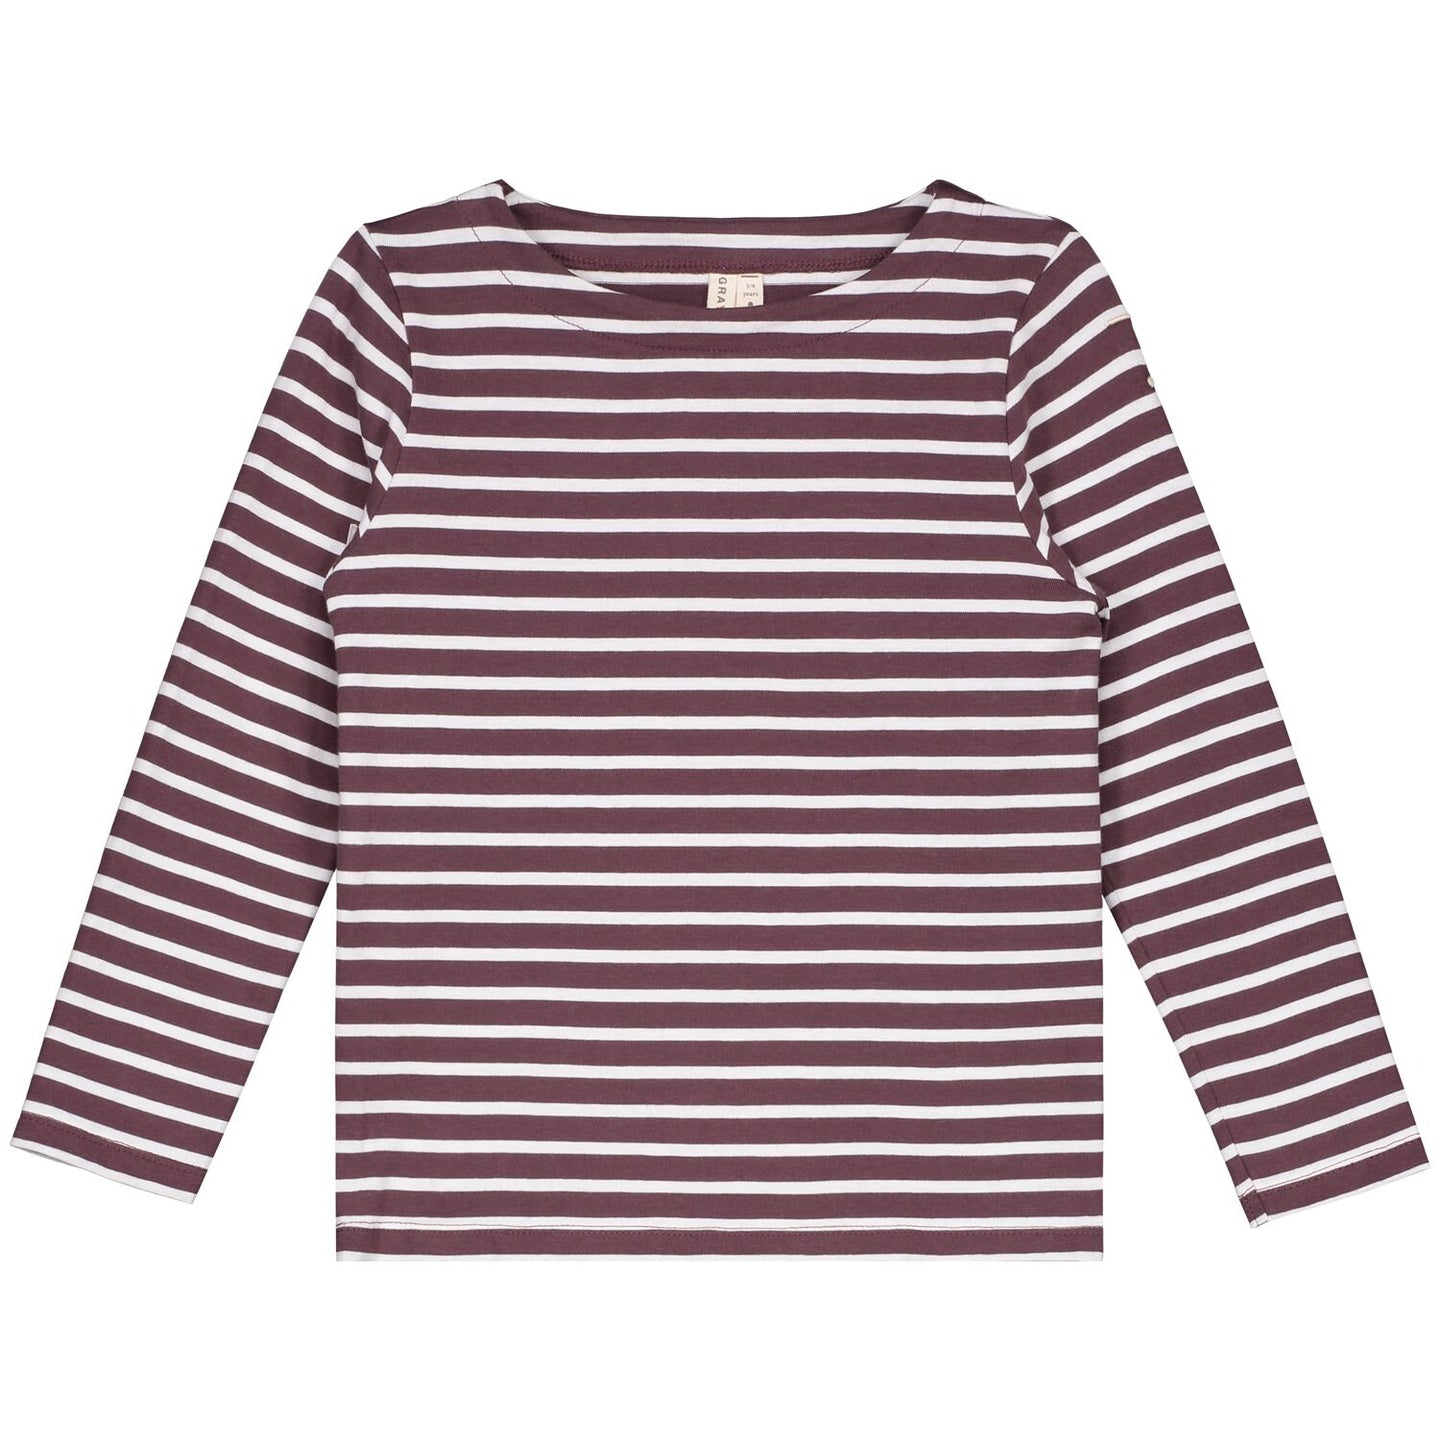 L/S STRIPED TEE (NEW FIT)